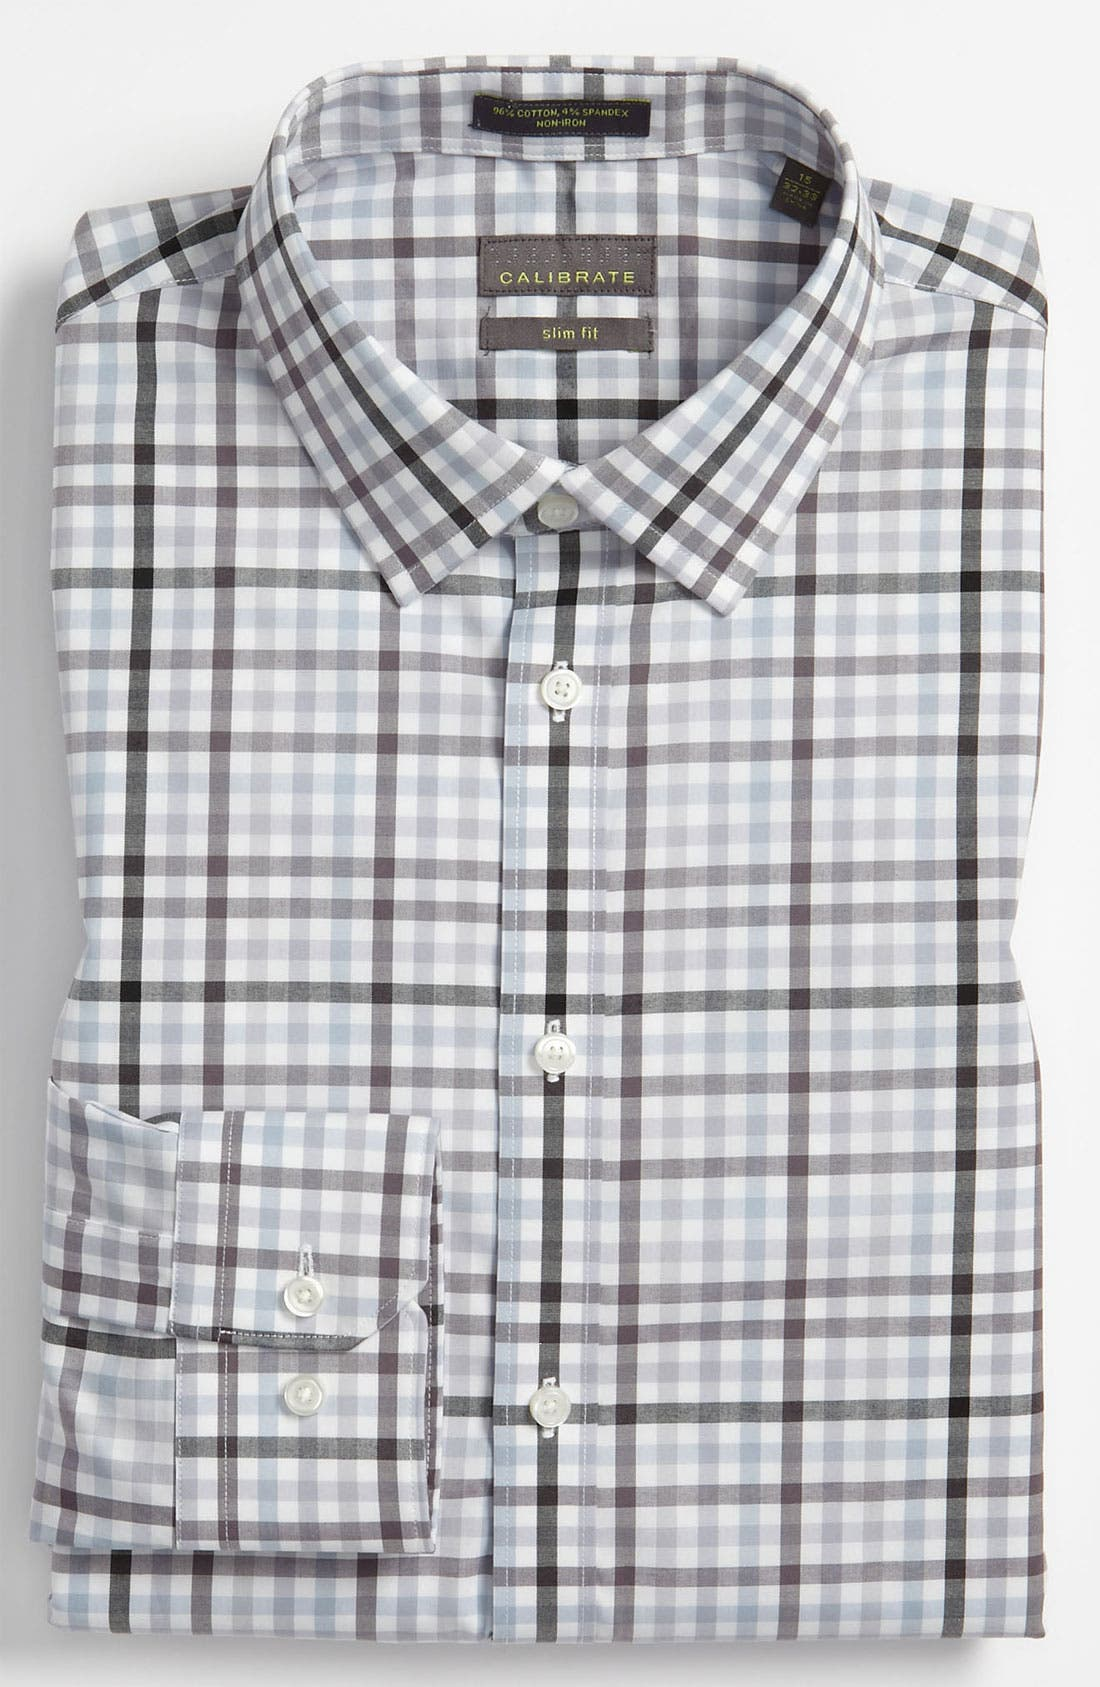 Main Image - Calibrate Slim Fit Non Iron Dress Shirt